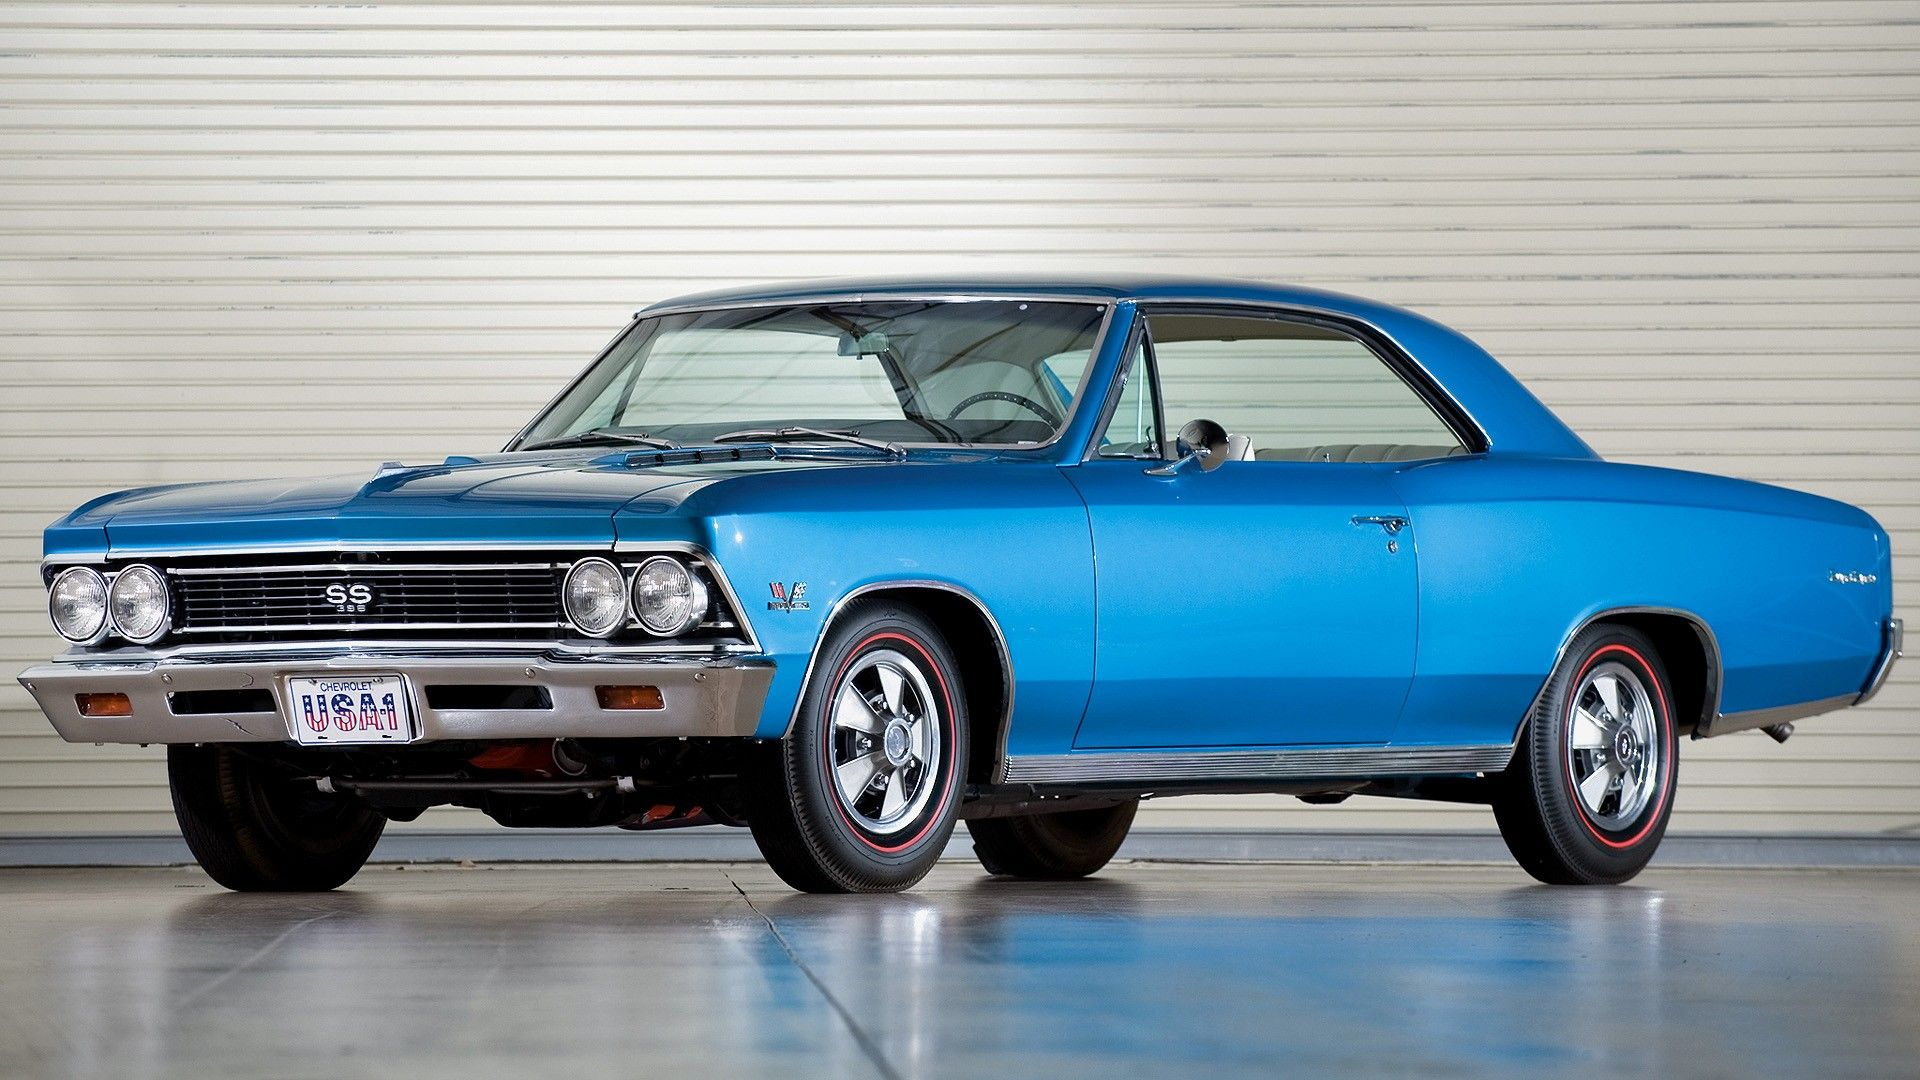 Chevy Ss Classic Muscle Cars | Classic hot rods | Pinterest ...